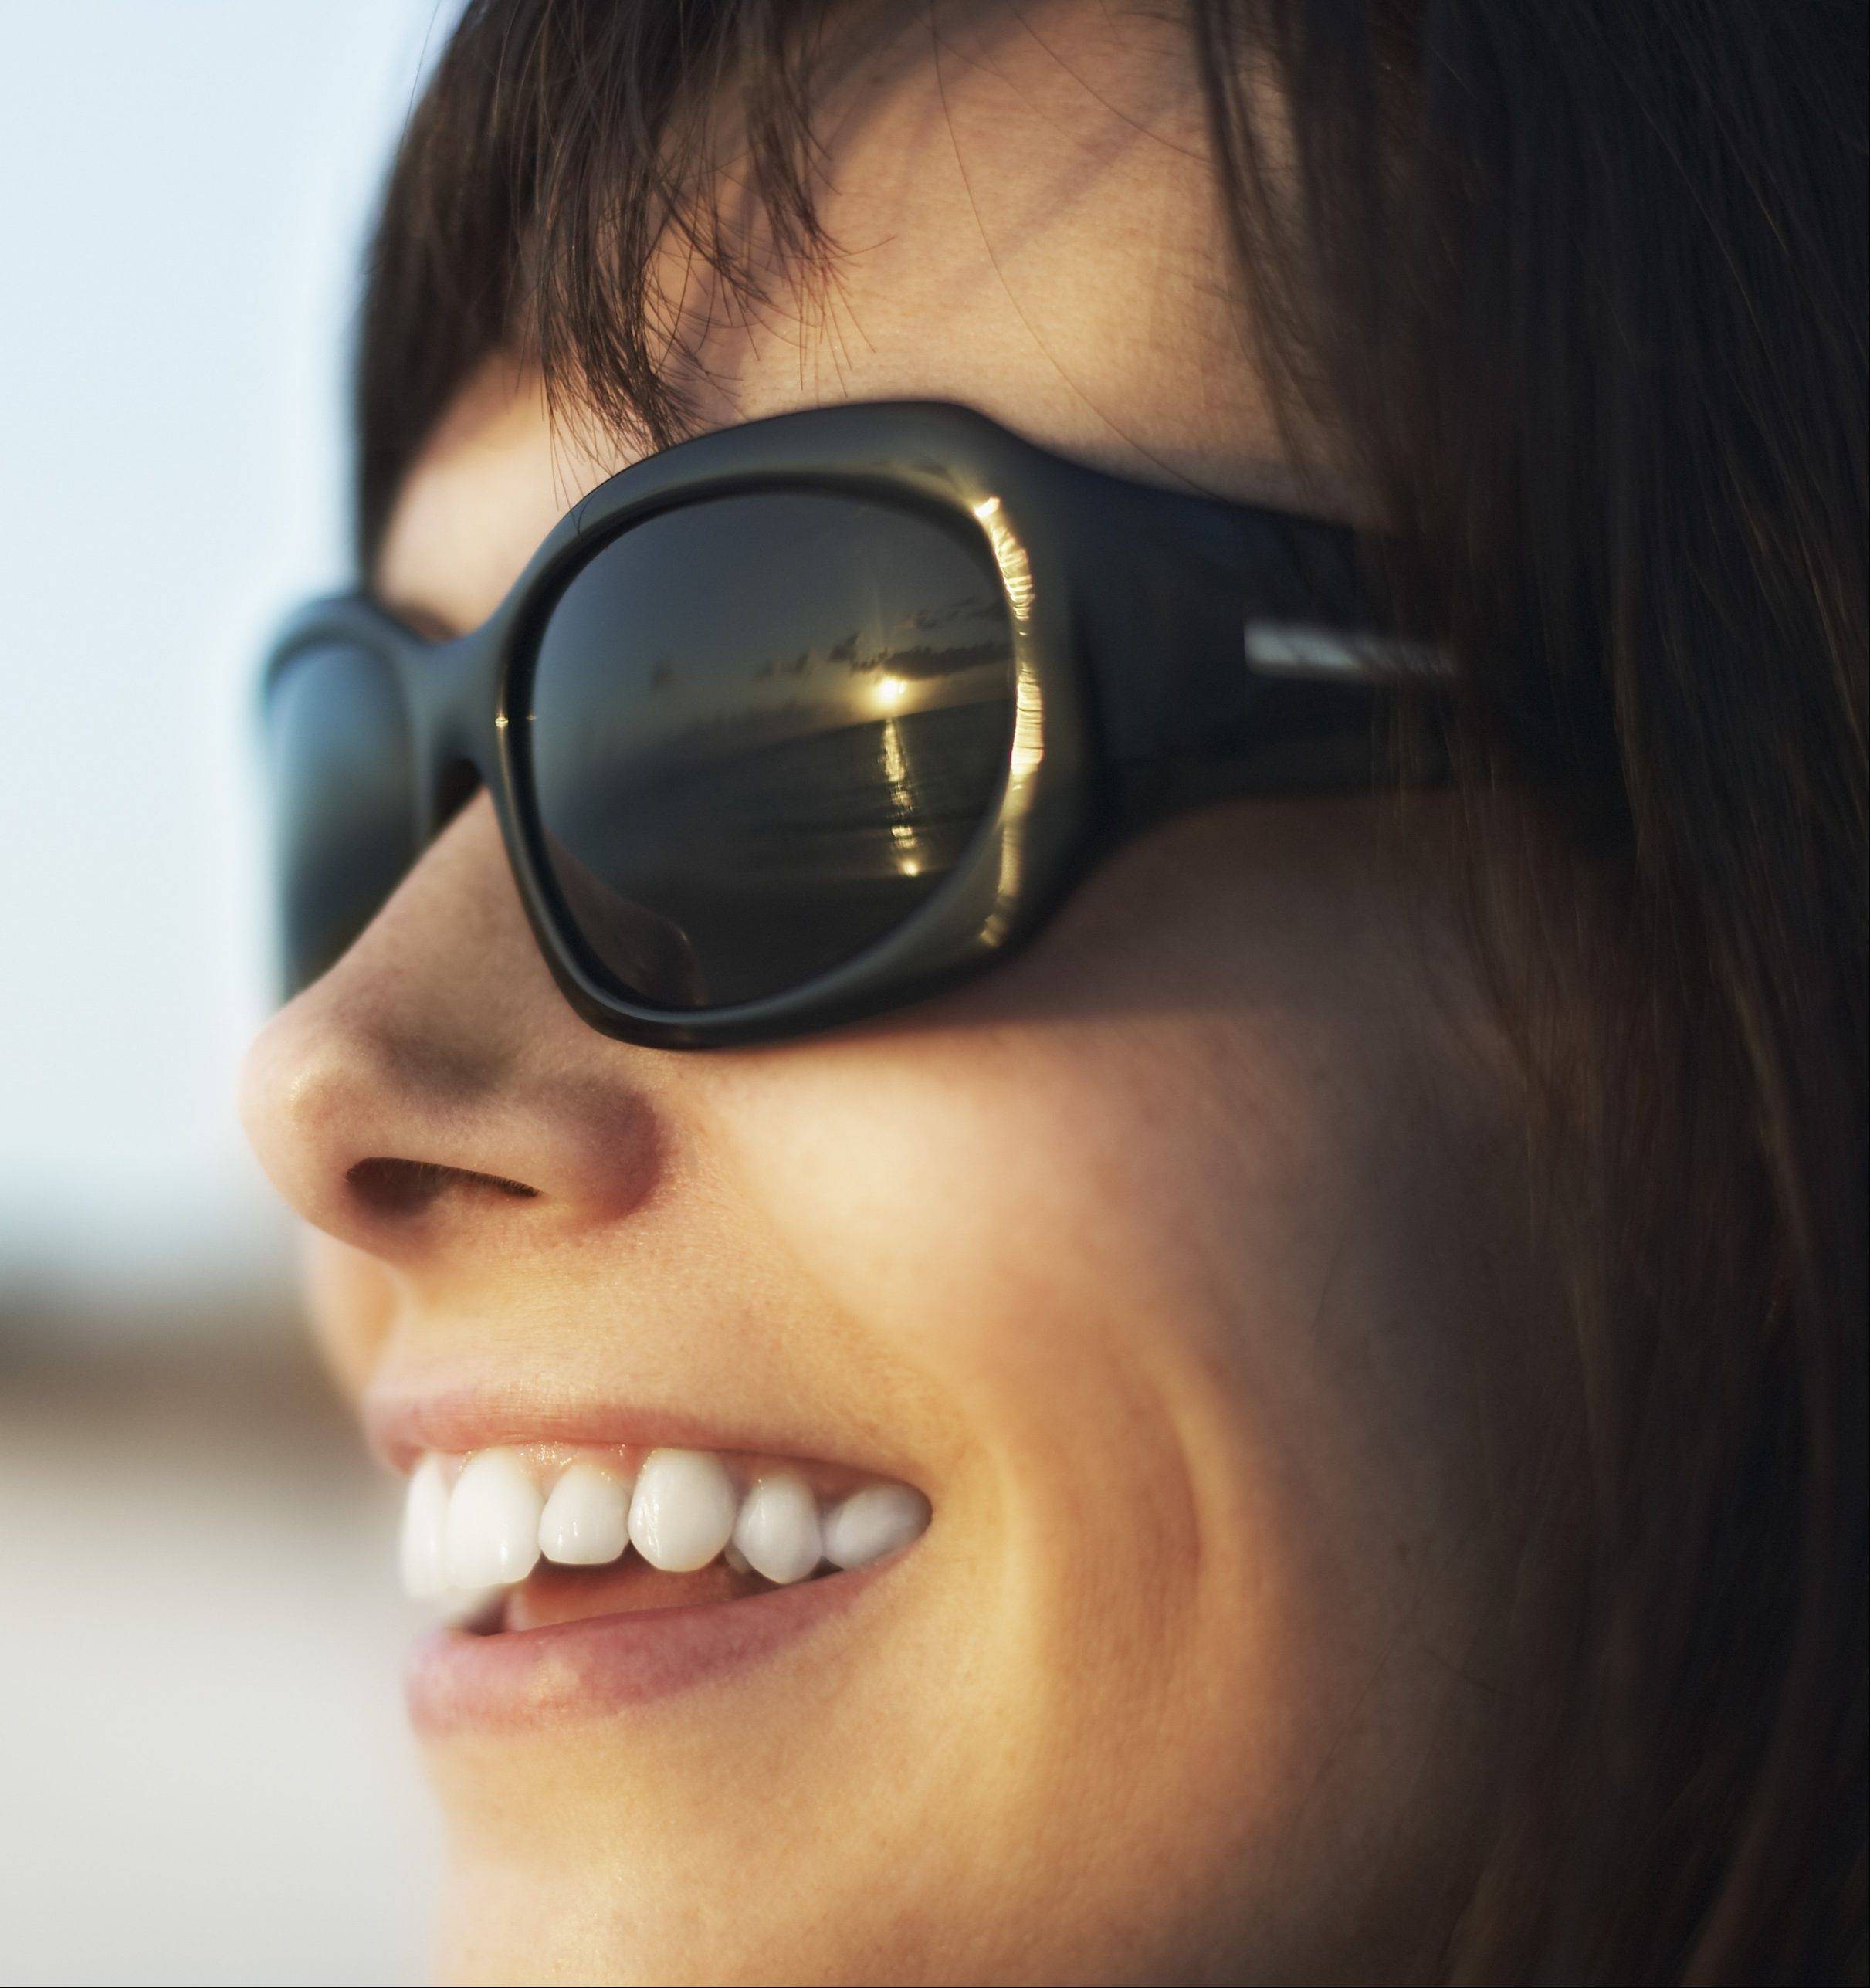 Wearing the right kind of sunglasses can protect your eyes from the sun's harsh rays.